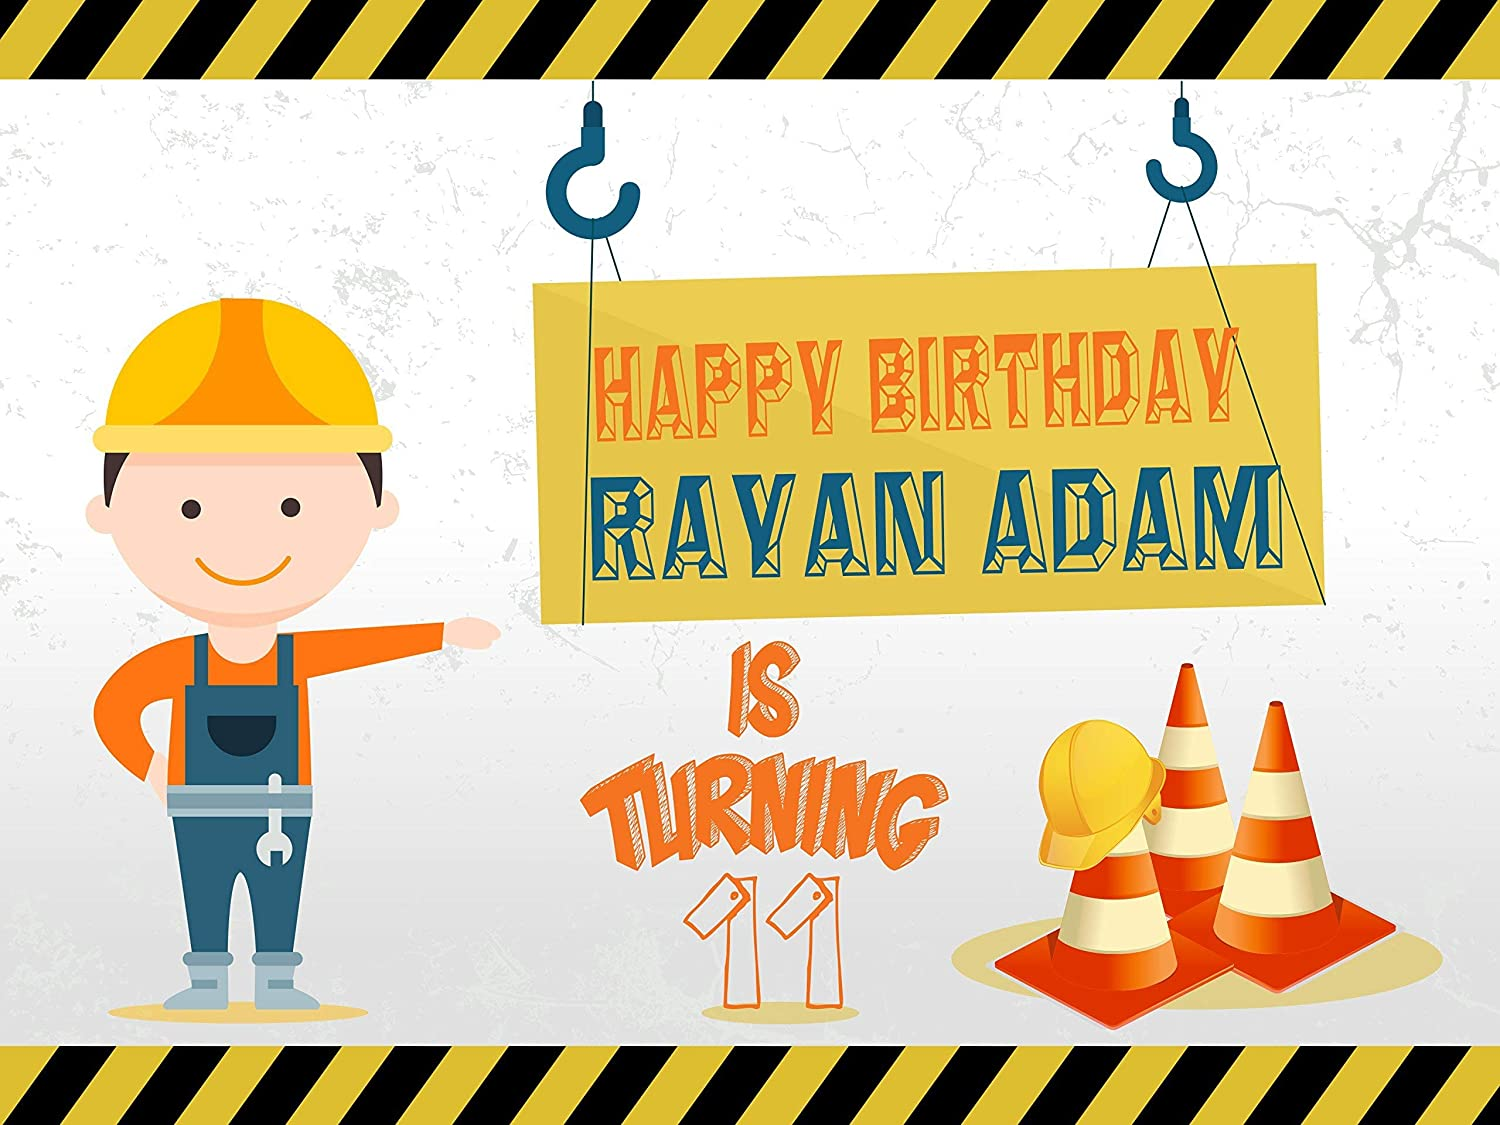 48x36 Handmade Party Supplies Poster Print Size 24x36 Custom Construction Sign Caution Cones Boy Worker Banner Decoration Birthday Party Poster with Crane 48x24 Birthday Banner Wall D/écor